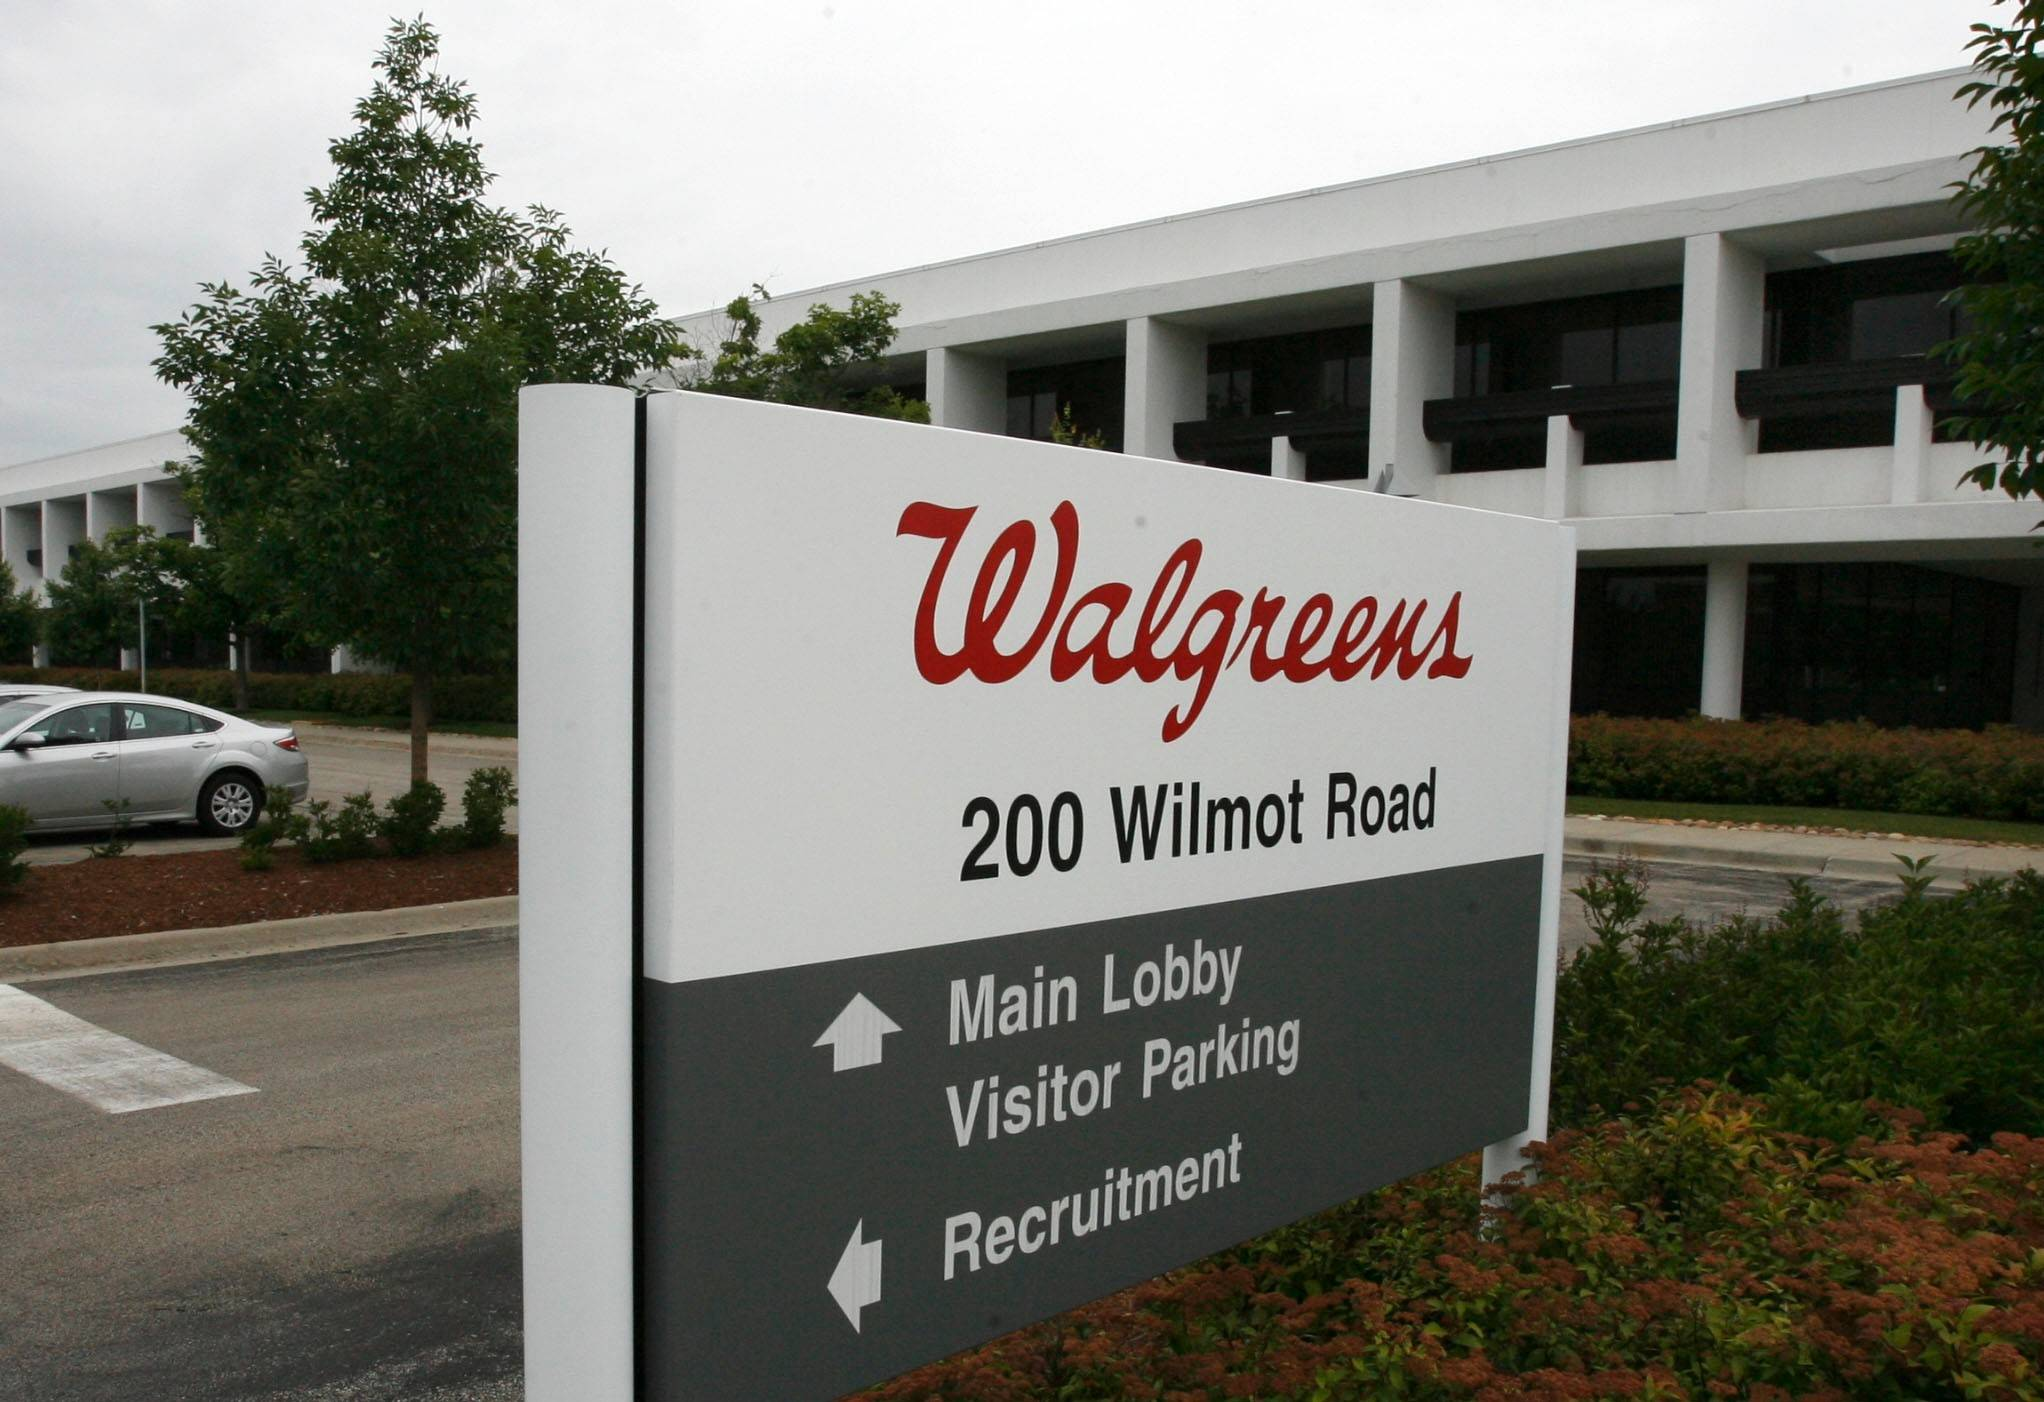 Walgreens Boots Alliance Inc.'s fiscal third-quarter earnings jumped more than 15 percent and beat Wall Street expectations despite flat sales from the drugstore chain's U.S. pharmacies.